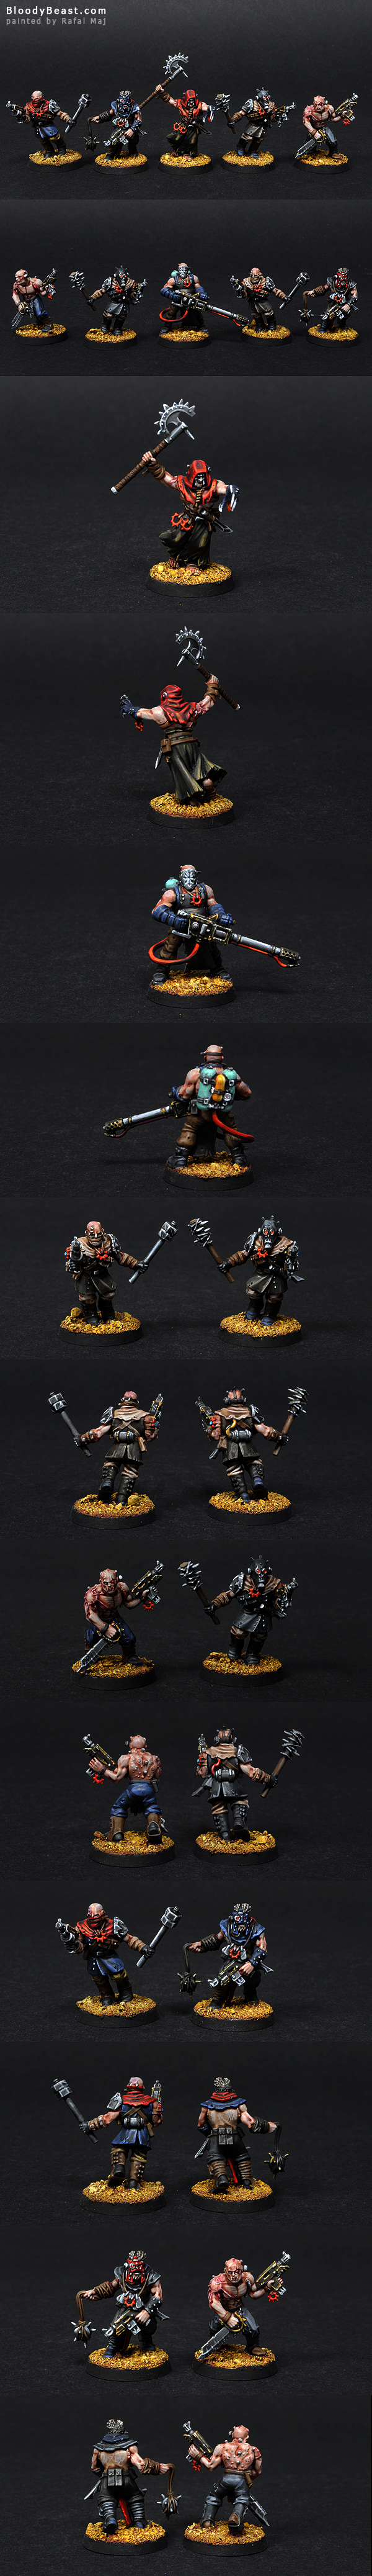 Chaos Space Marines Cultists with Flamer painted by Rafal Maj (BloodyBeast.com)